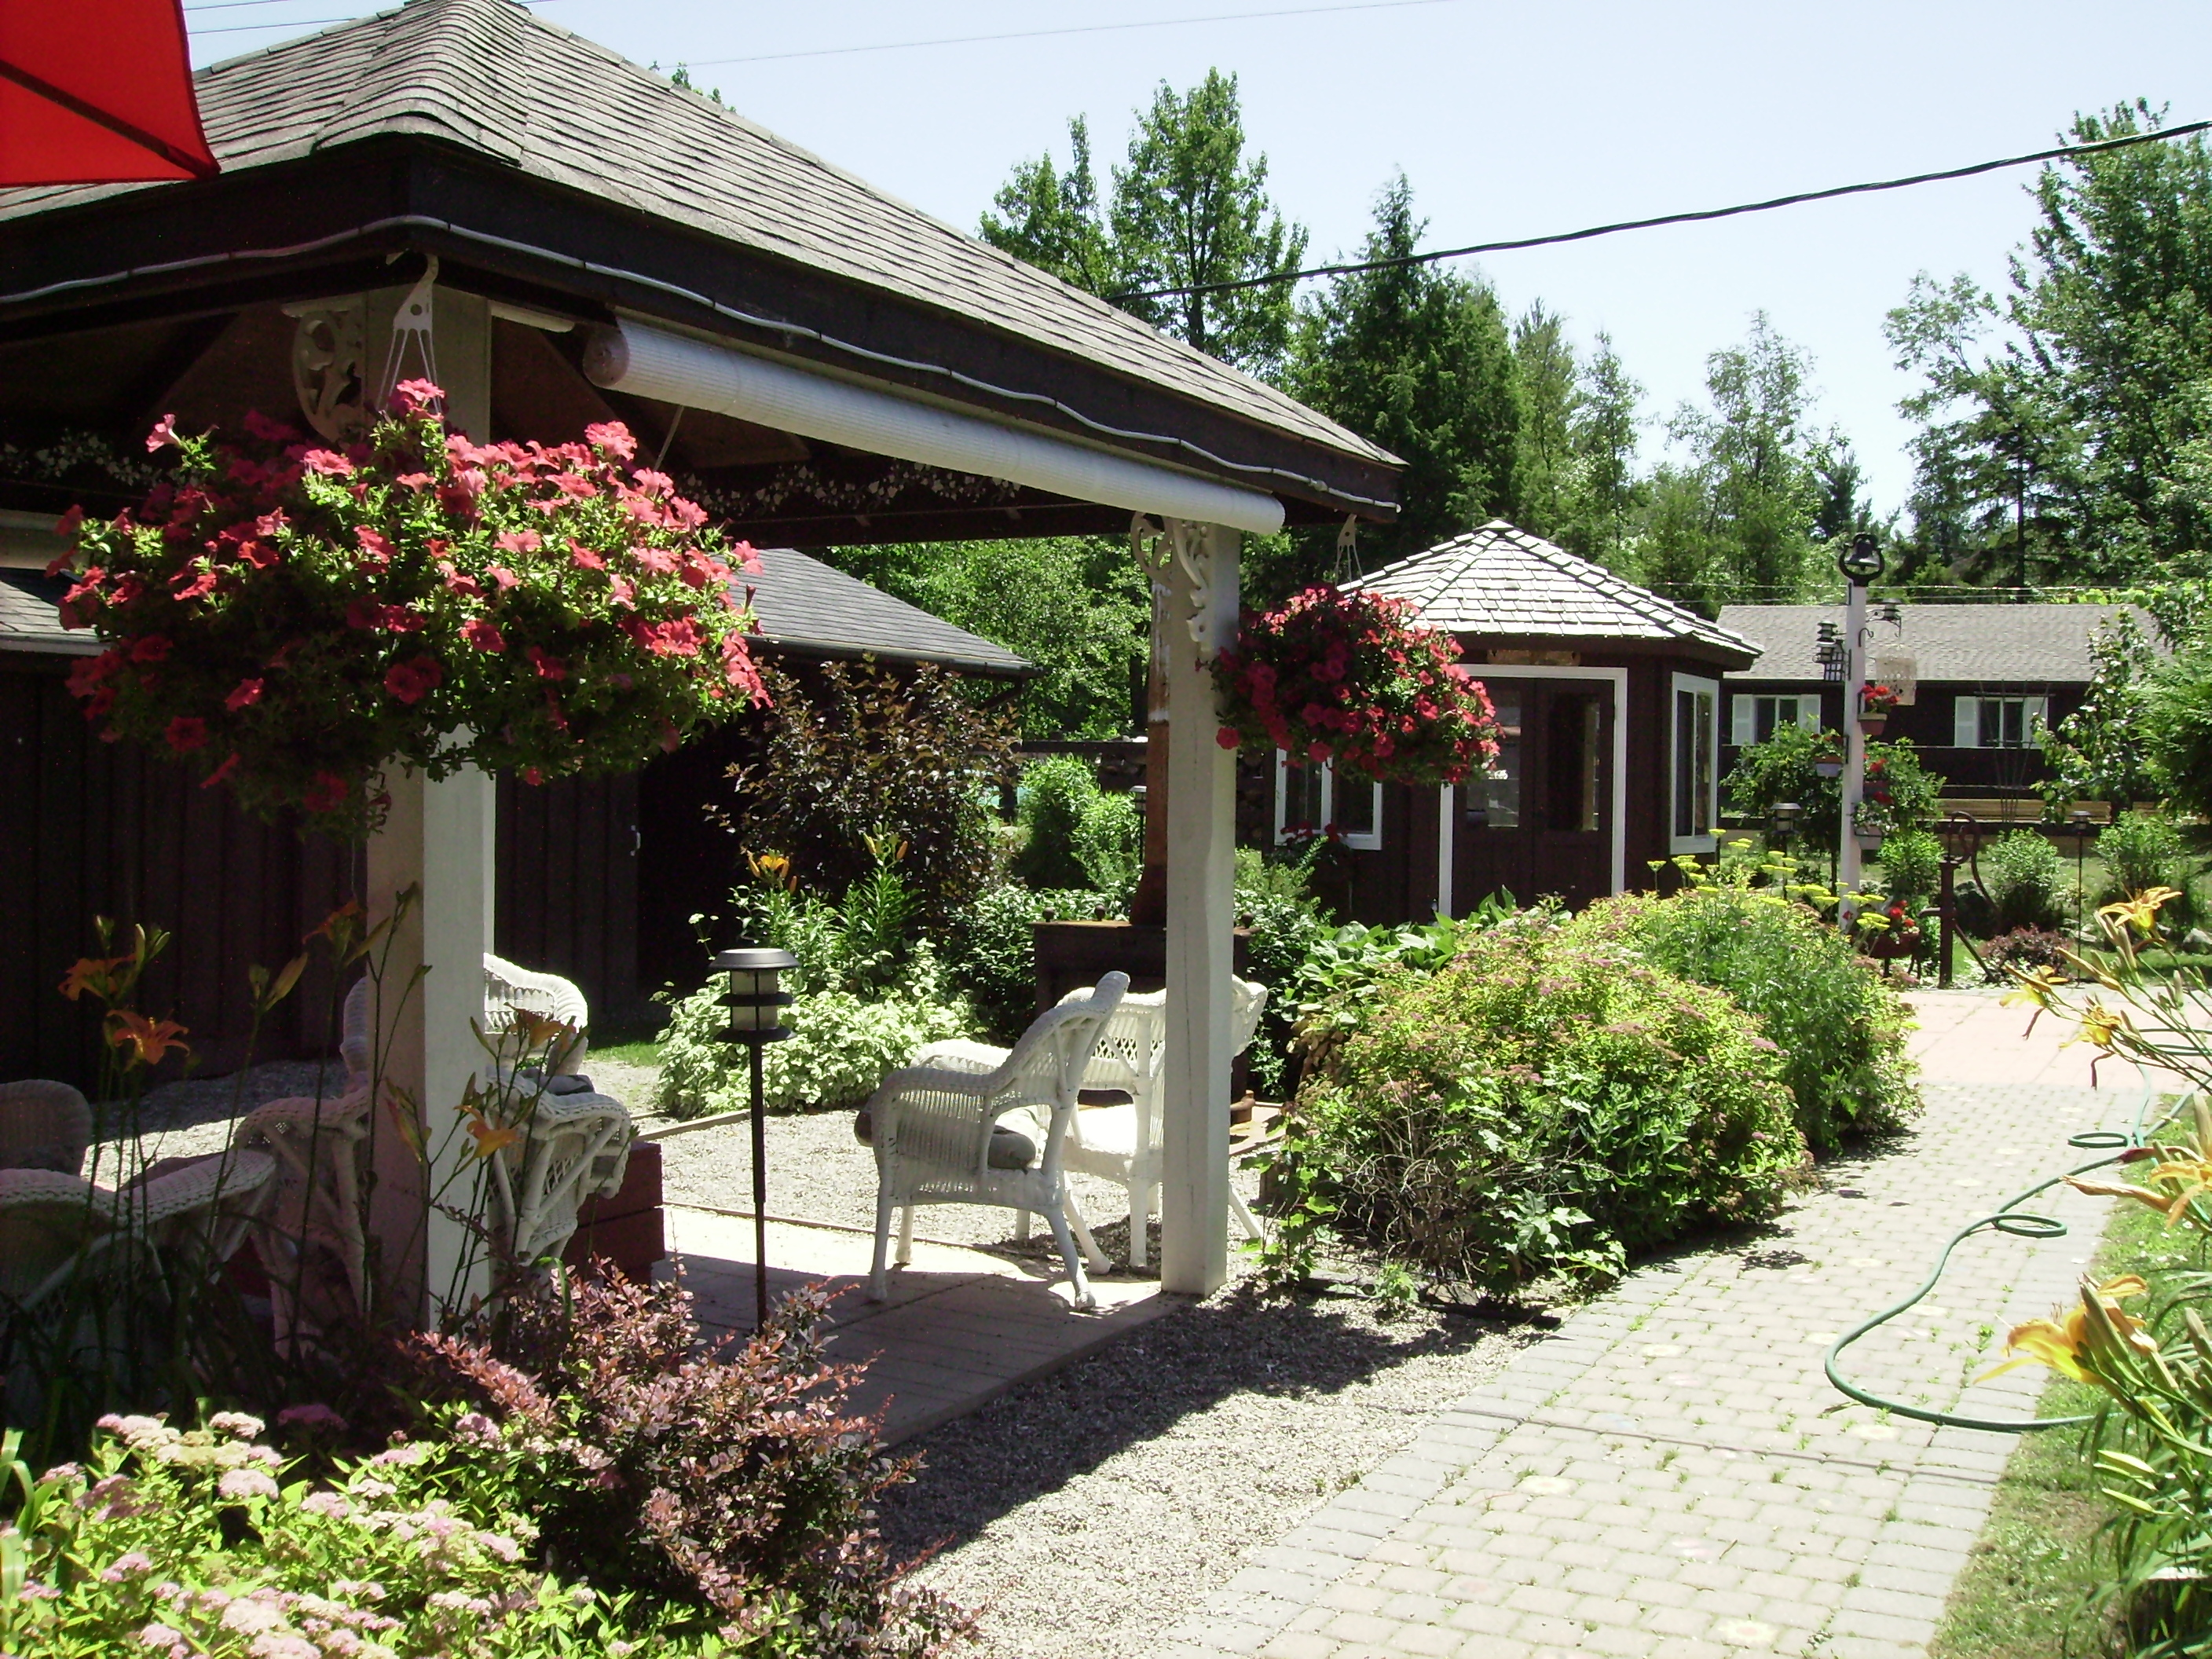 Theguest House Offers A Variety Of Areas Where You Can Curl Up With Book Unwind Gl Wine Visit Friends Or Just Take Siesta